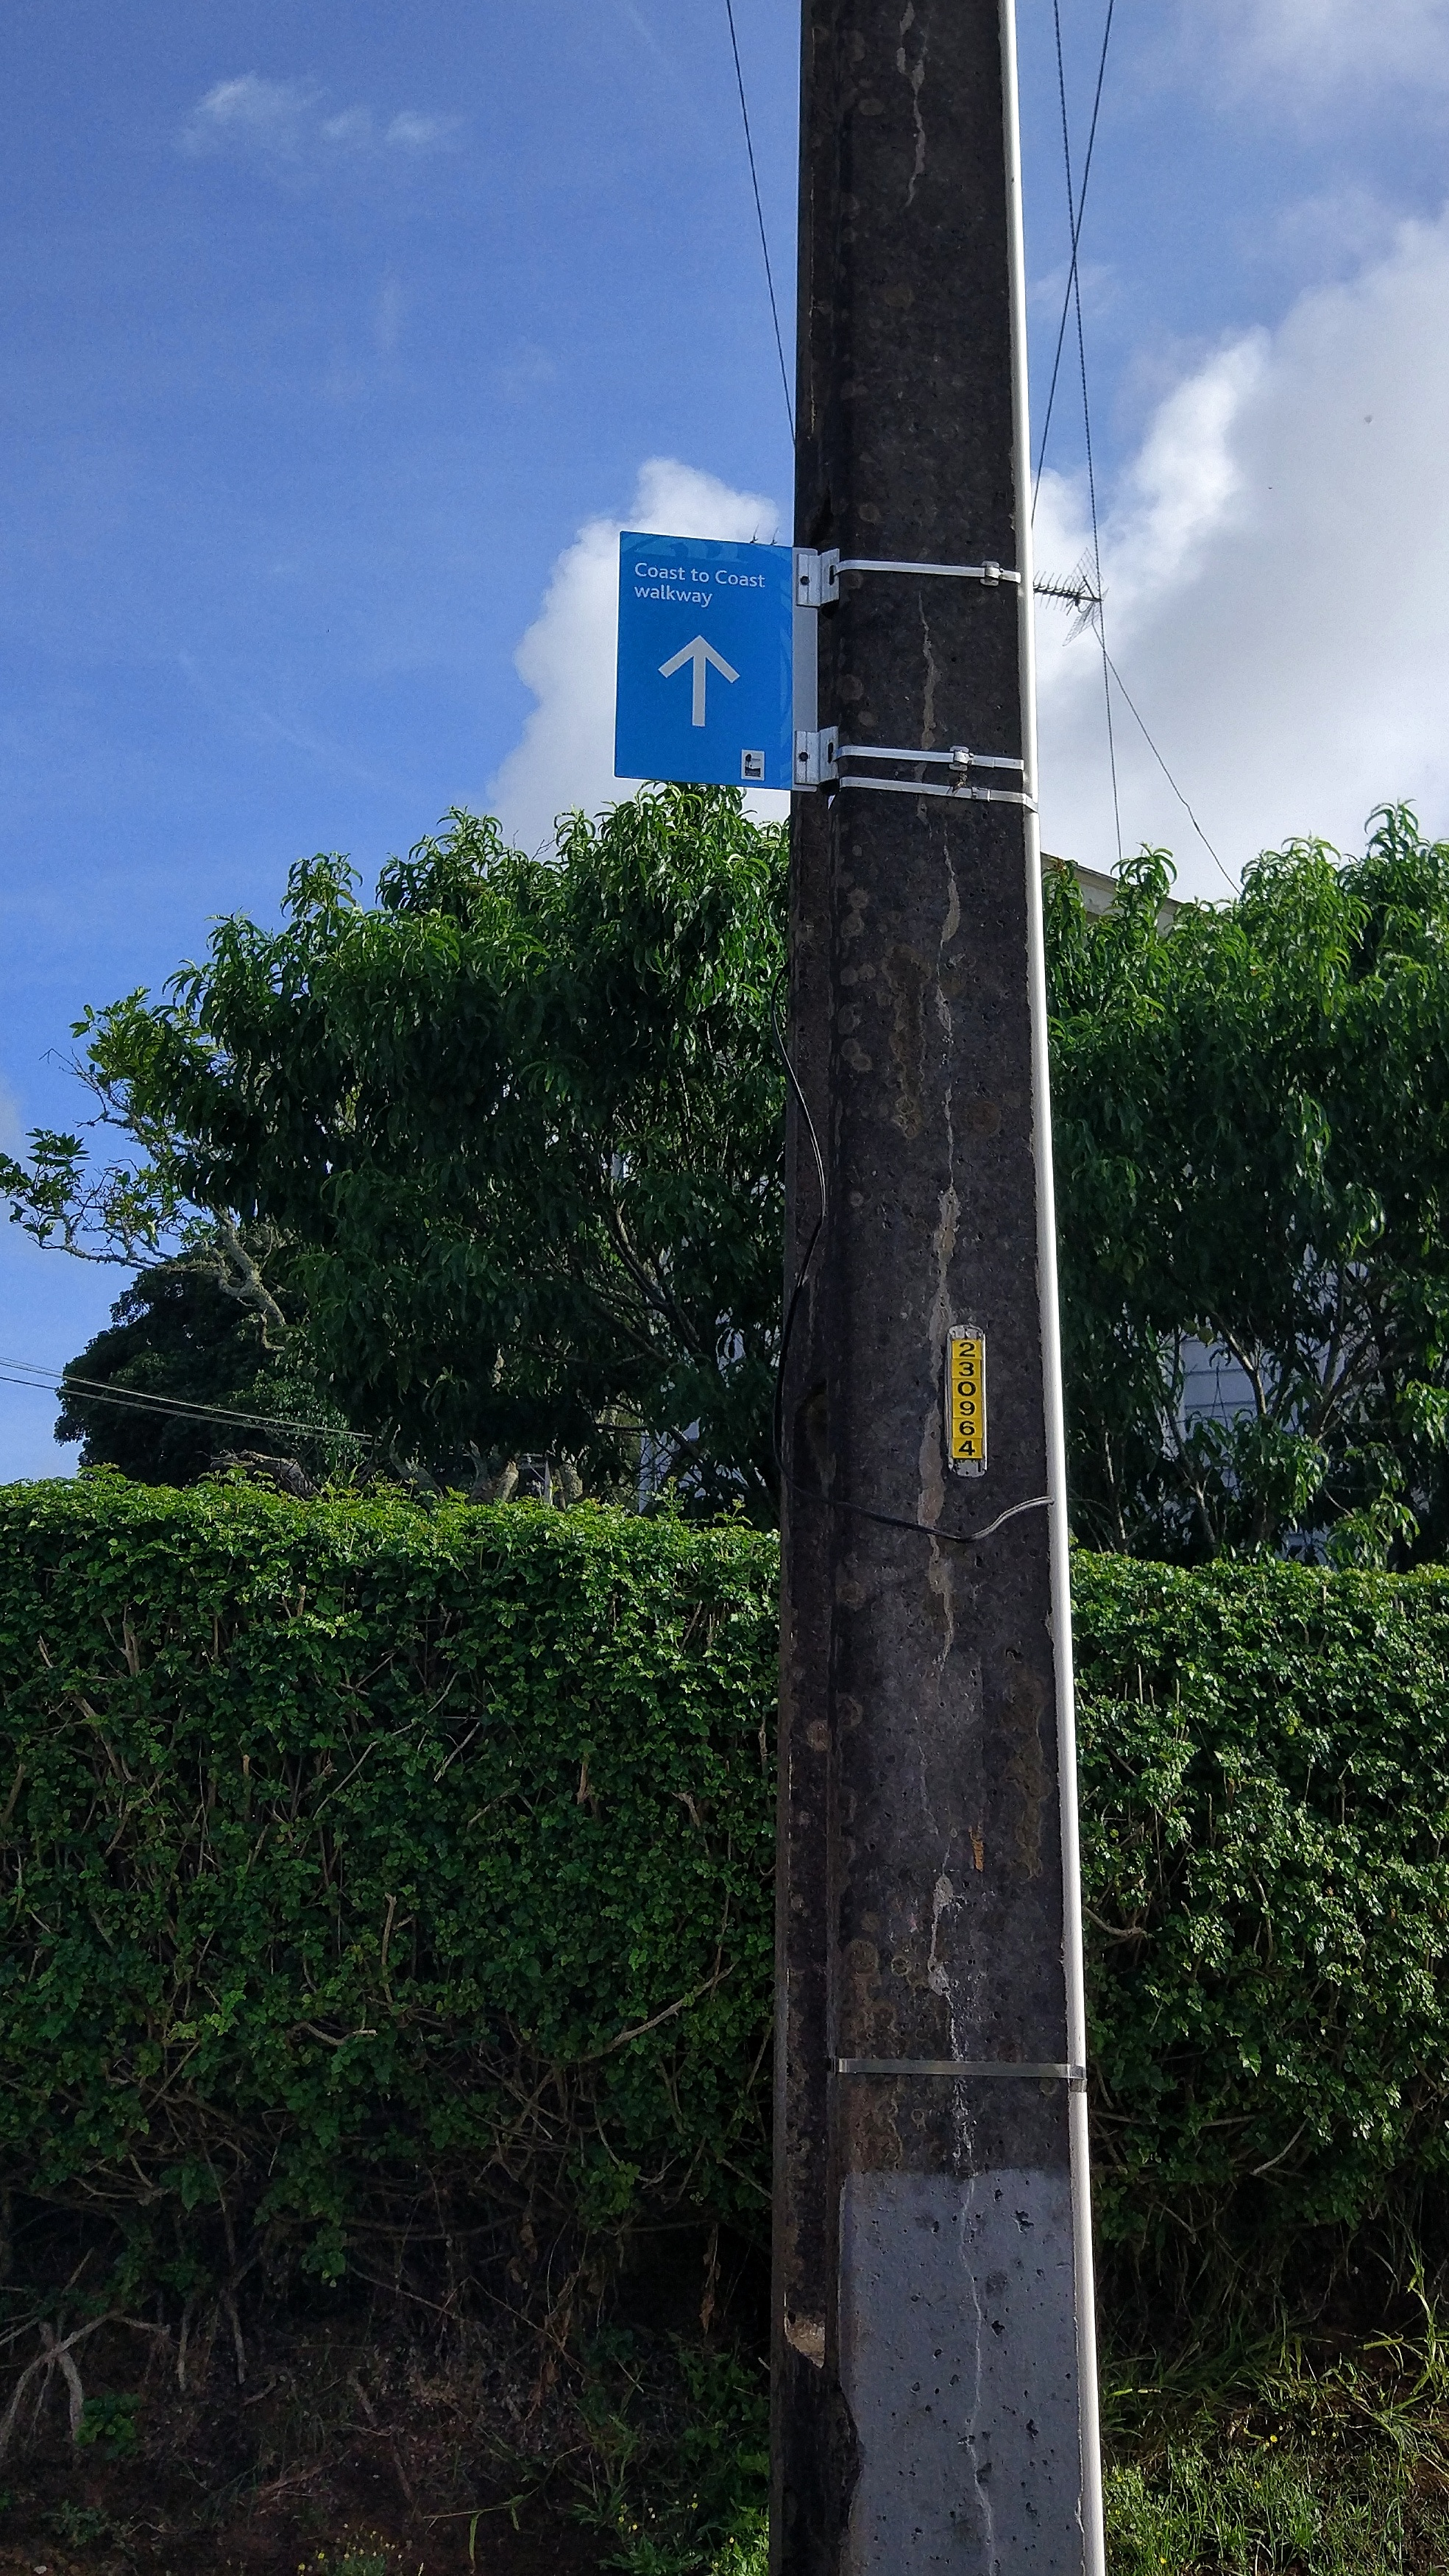 Finding the coast to coast walk signs: blue for onehunga - city and yellow for the other way